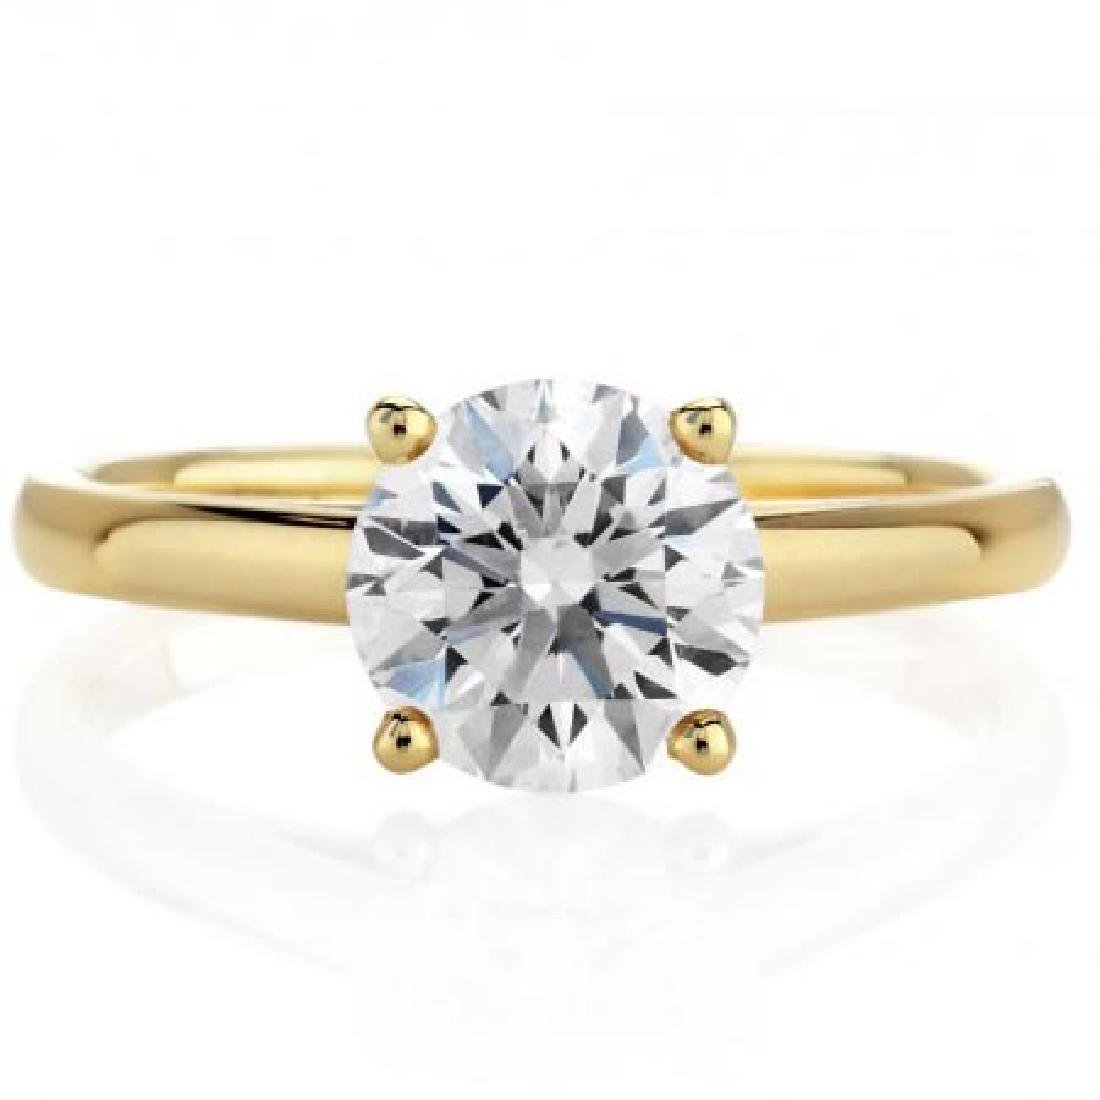 CERTIFIED 0.75 CTW ROUND I/I3 SOLITAIRE RING IN 14K YEL